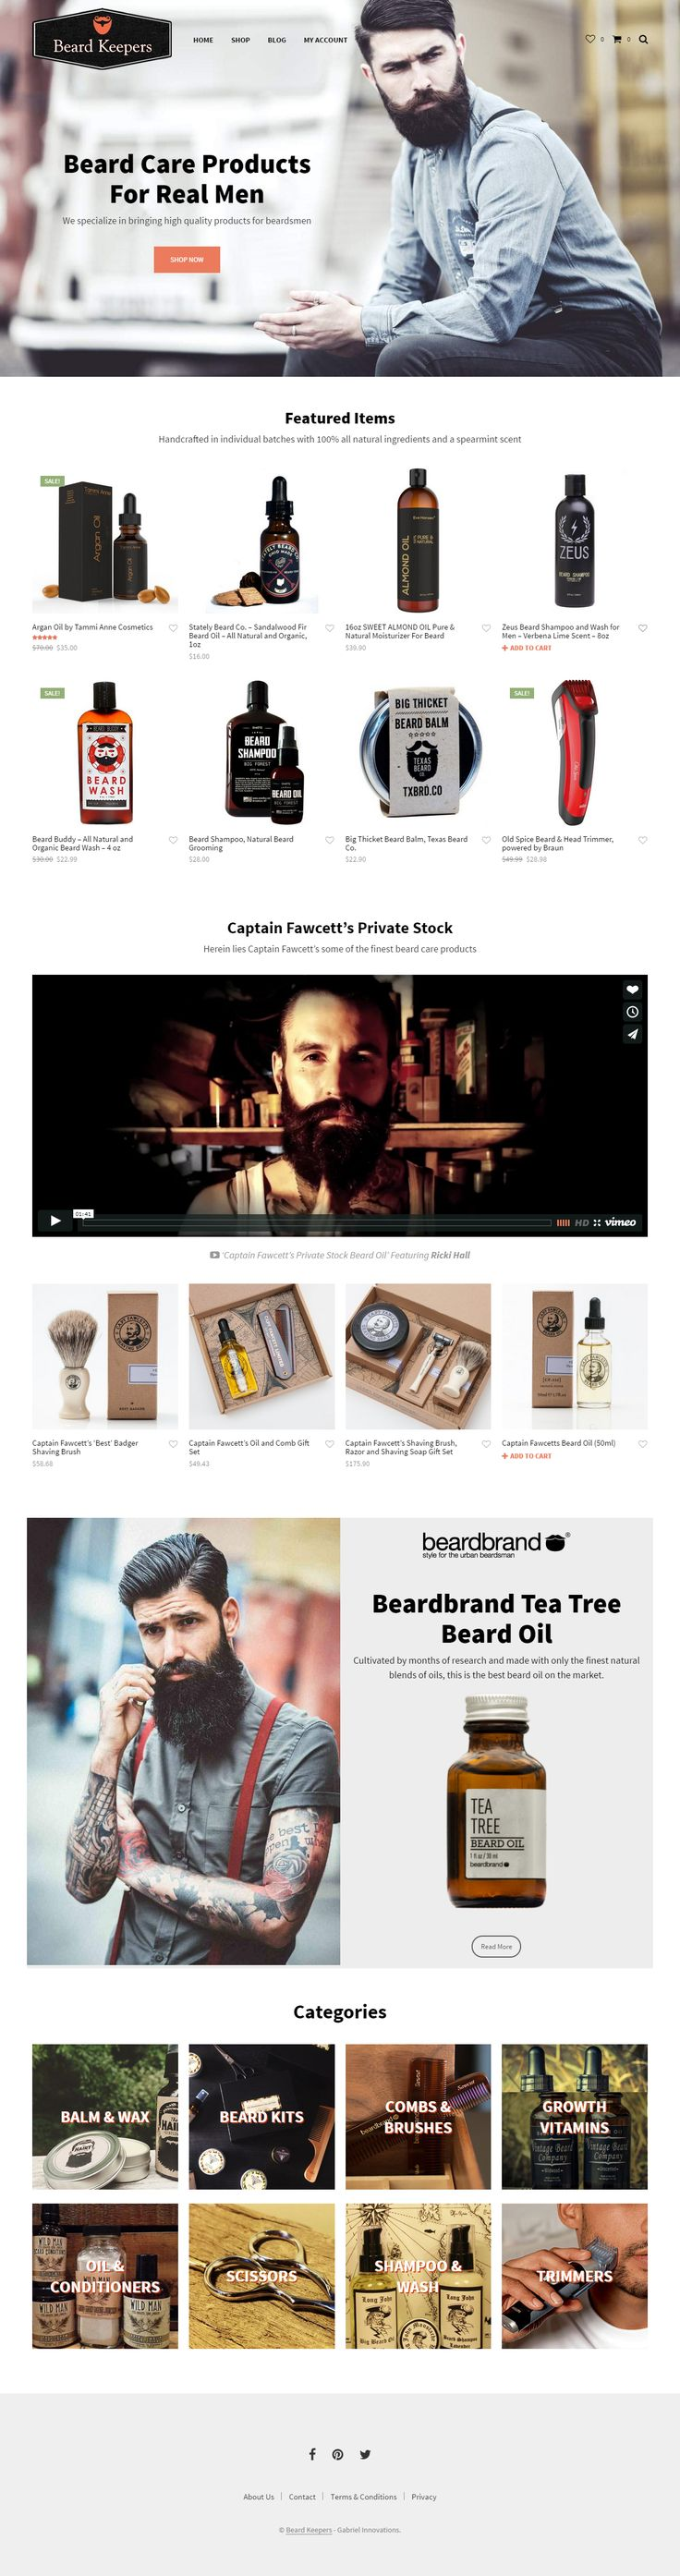 beardkeepers.com, created with Shopkeeper WP theme http://themeforest.net/item/shopkeeper-responsive-wordpress-theme/9553045?&utm_source=pinterest.com&utm_medium=social&utm_content=beard-keepers&utm_campaign=showcase #wordpress #bestsites #webdesign #beard #hipster #wordpresstheme #design